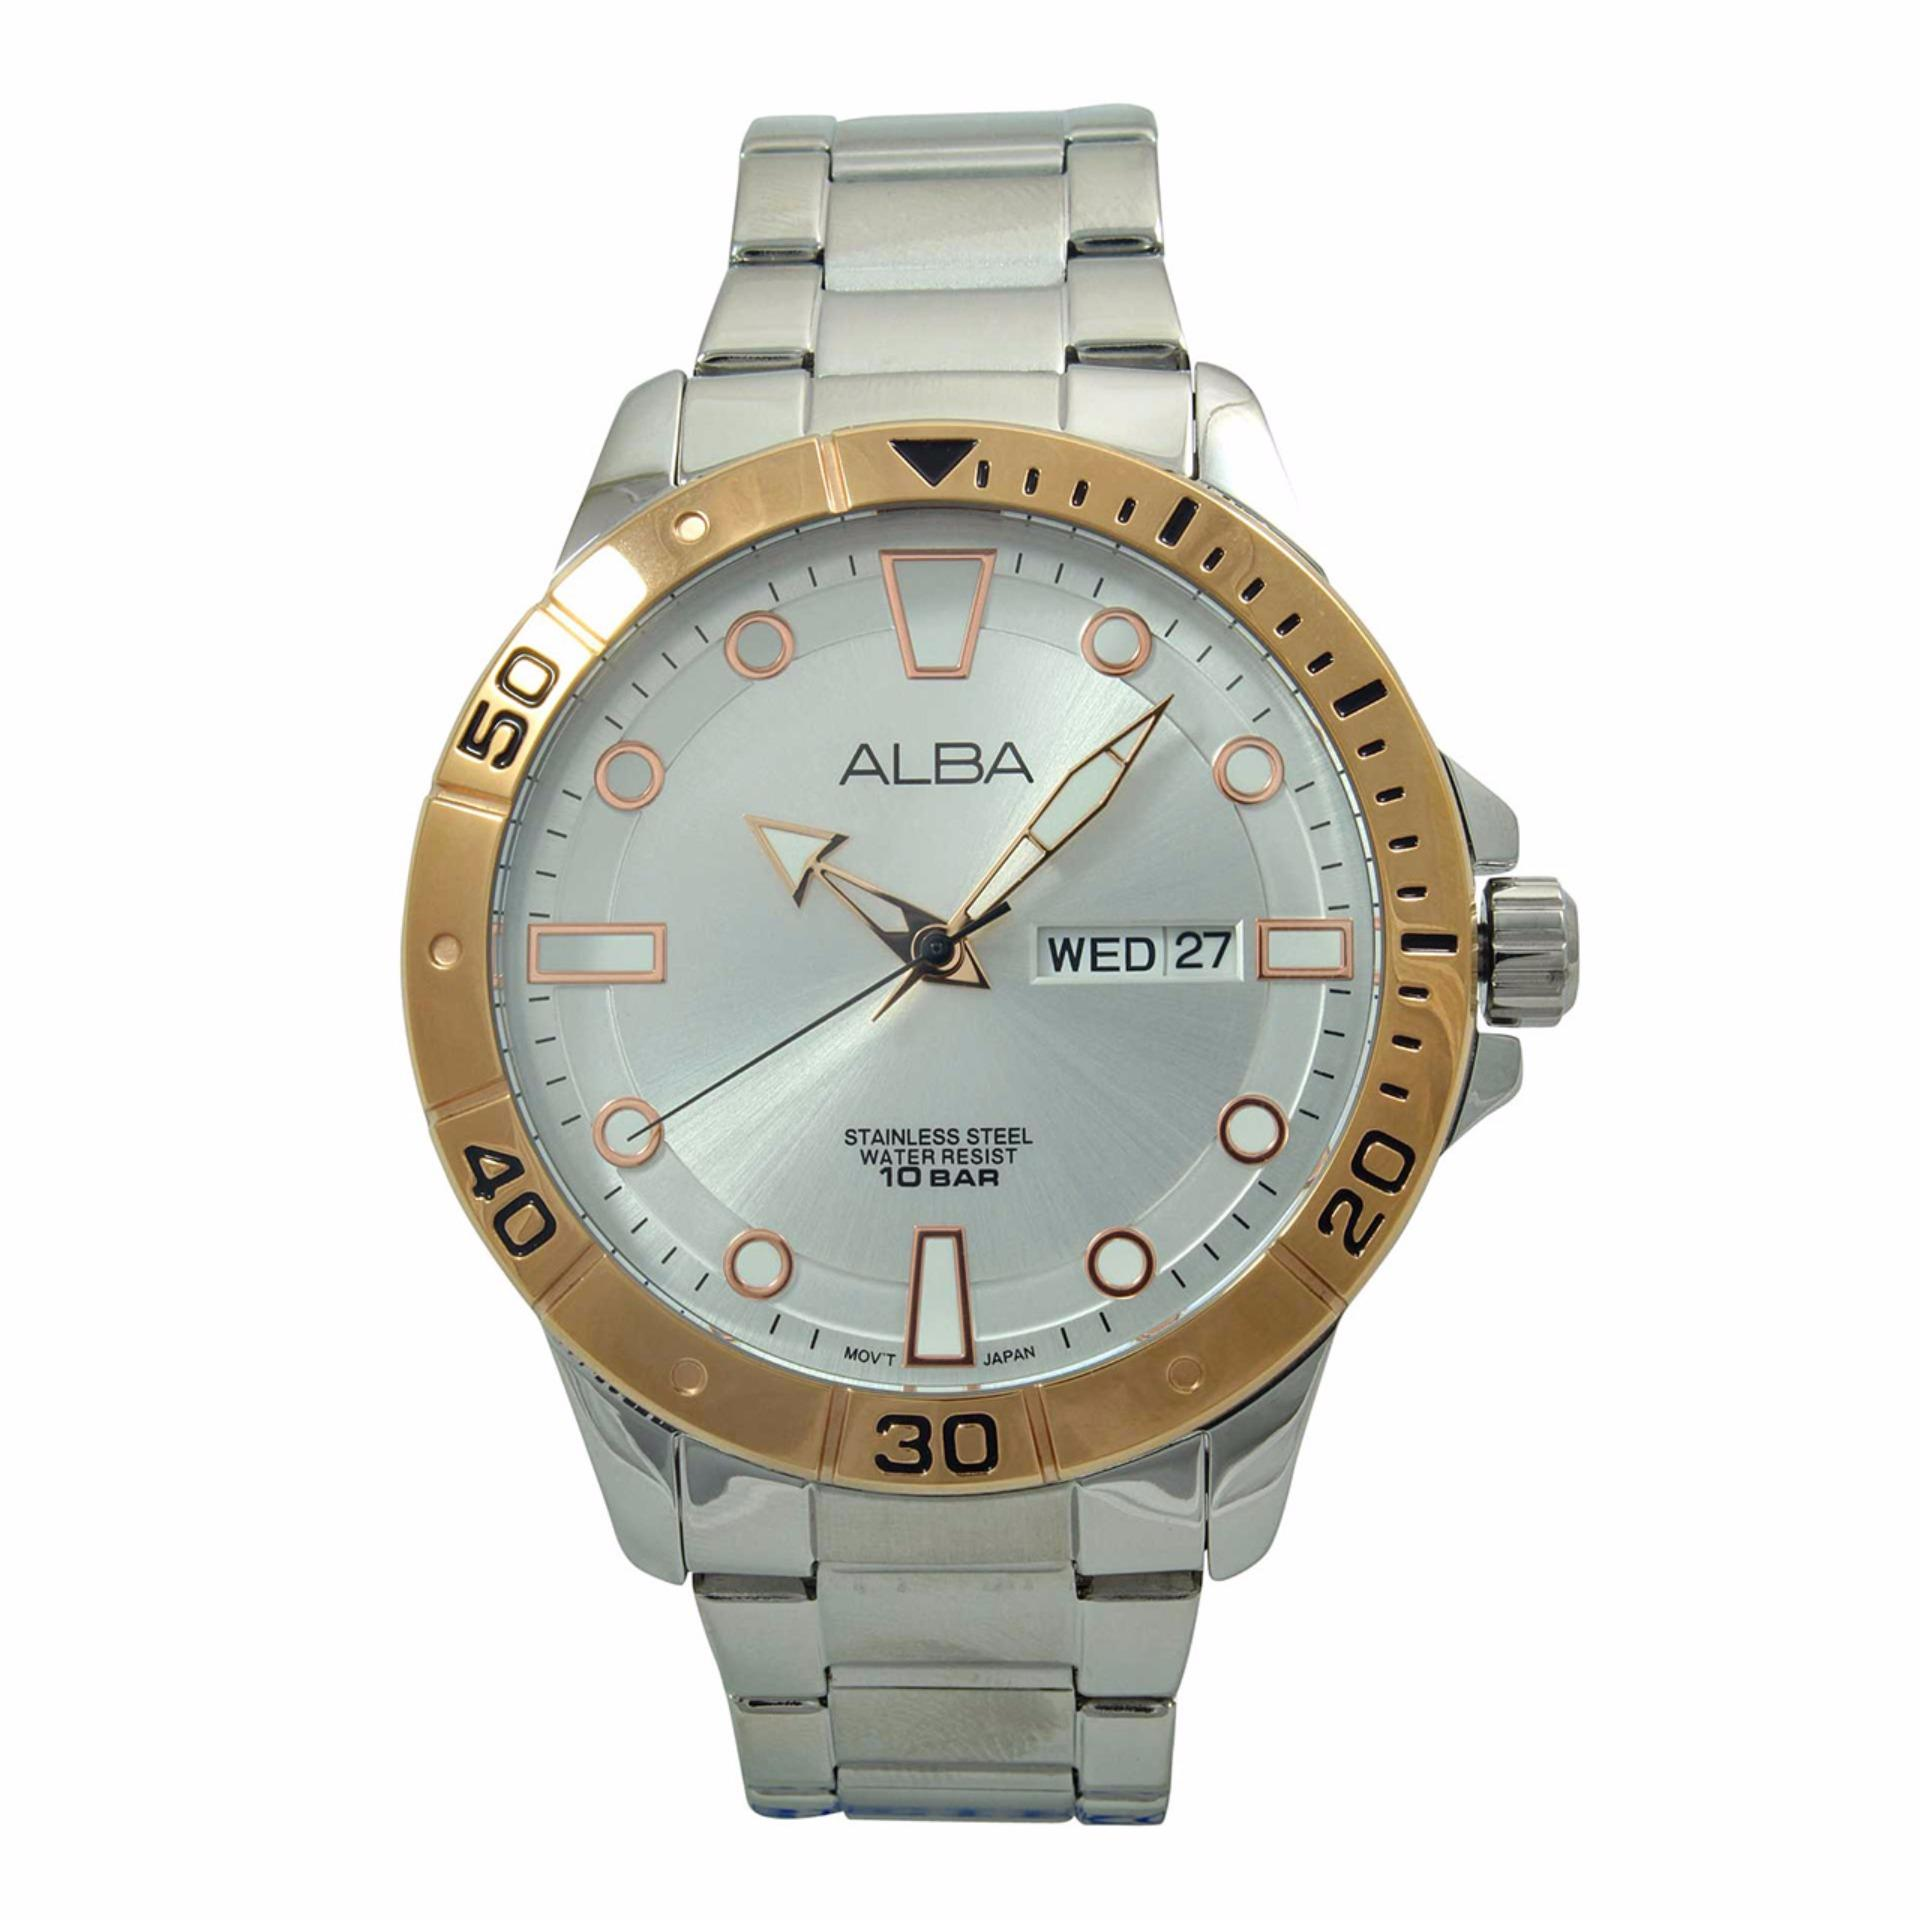 Jam Tangan GUESS Original Model Terbaru Harga Online di Indonesia Source · ALBA Jam Tangan Pria Silver Rosegold Stainless Steel AT2036